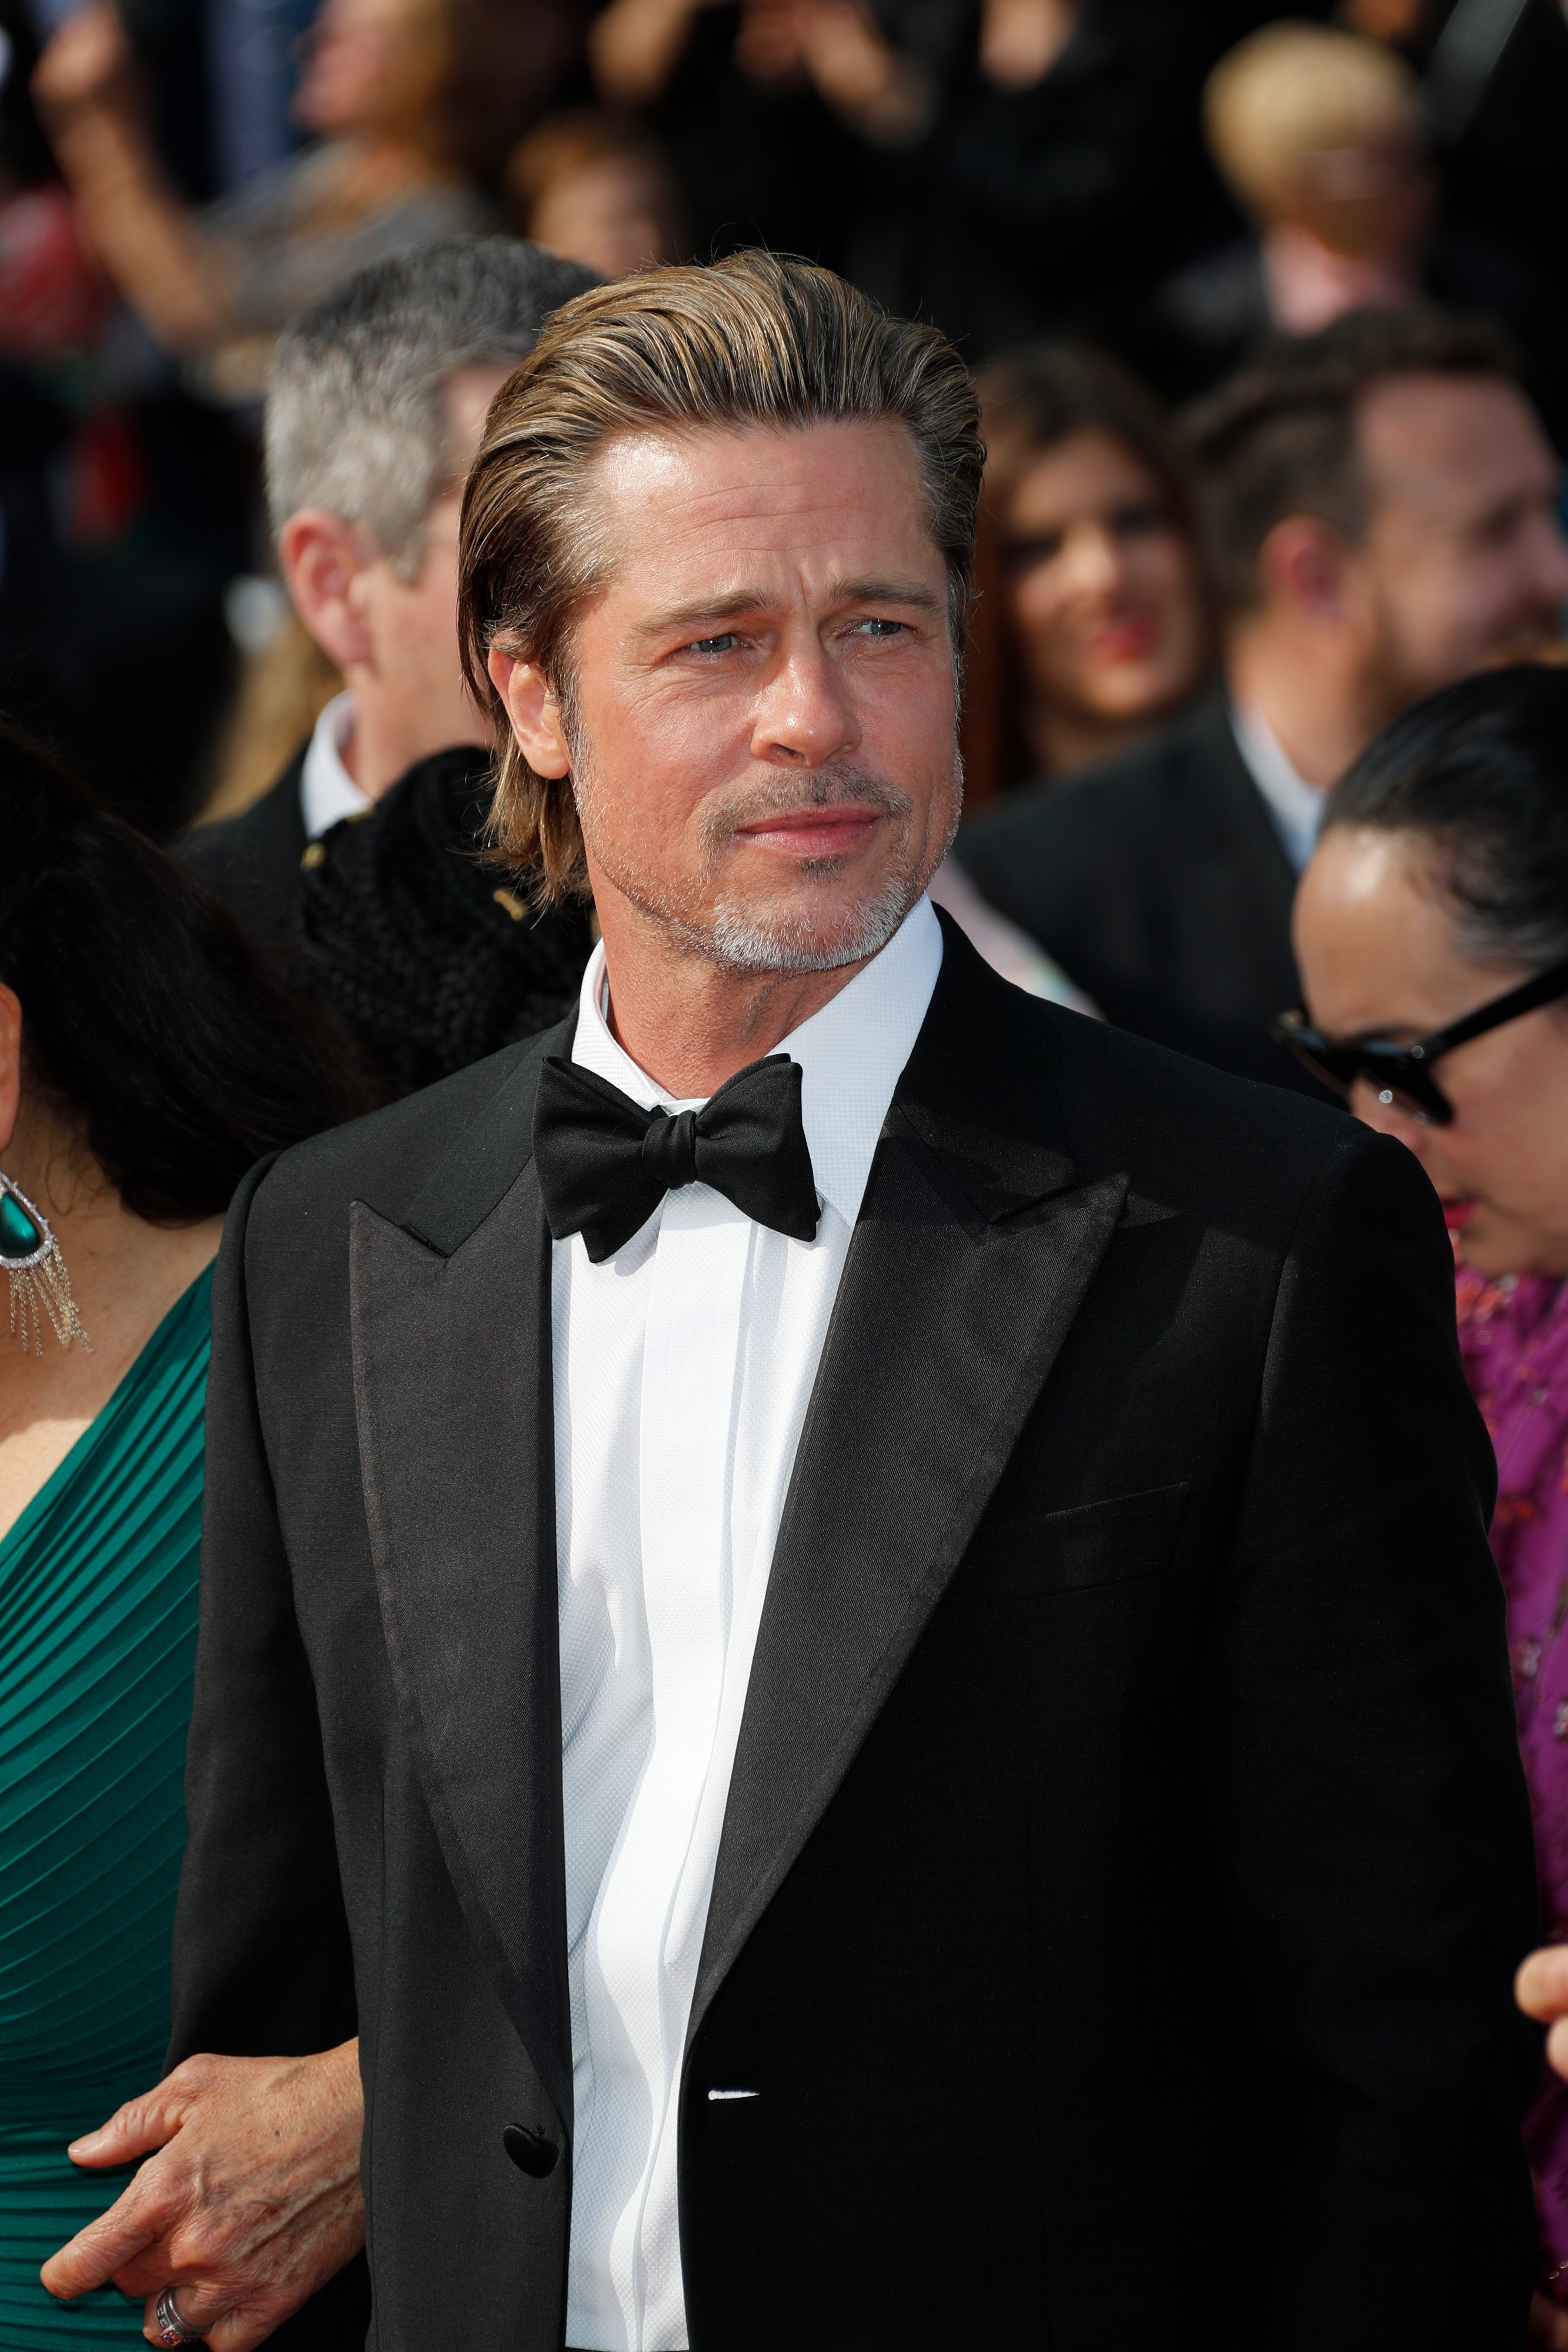 Brad Pitt at the 72nd annual Cannes Film Festival on May 21, 2019 in Cannes, France | Photo: Getty Images